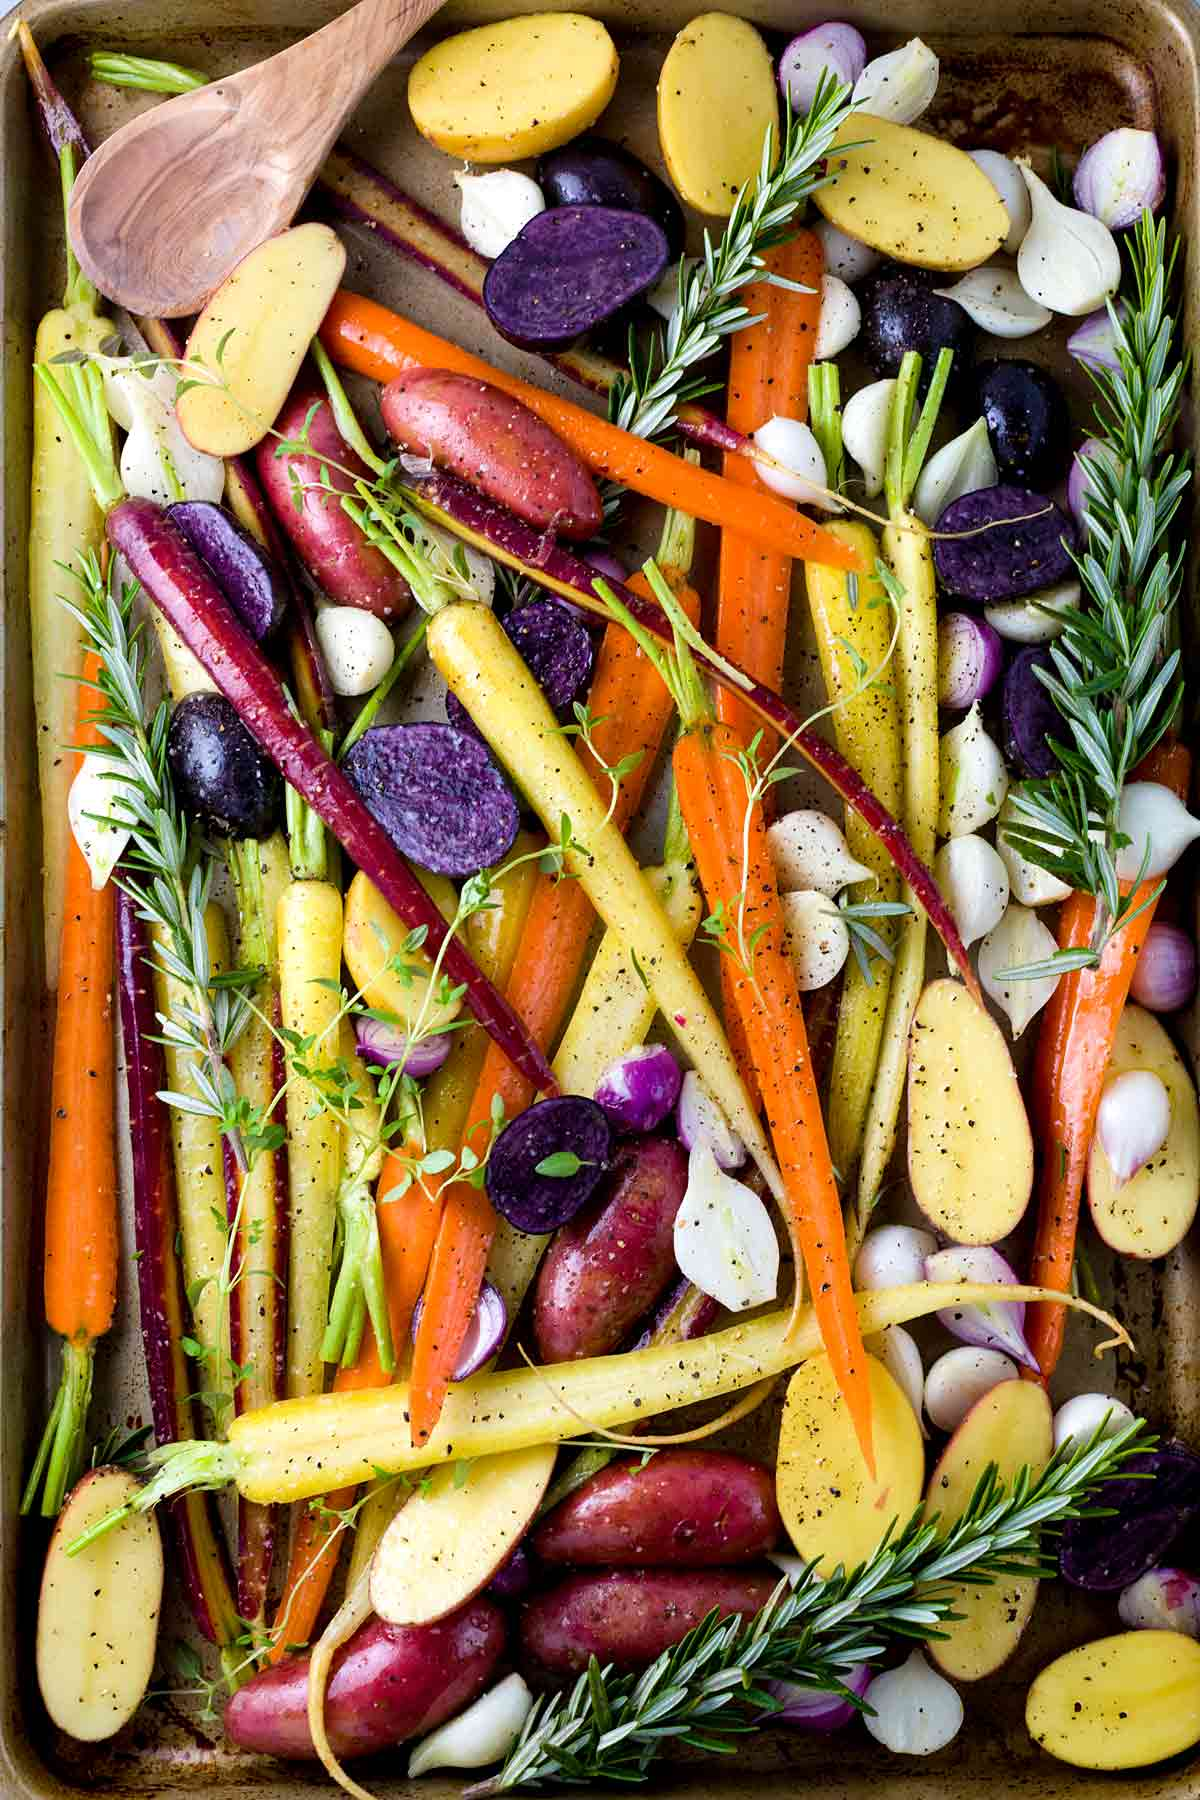 Rosemary, thyme, potatoes, carrots, and onions on a sheet pan